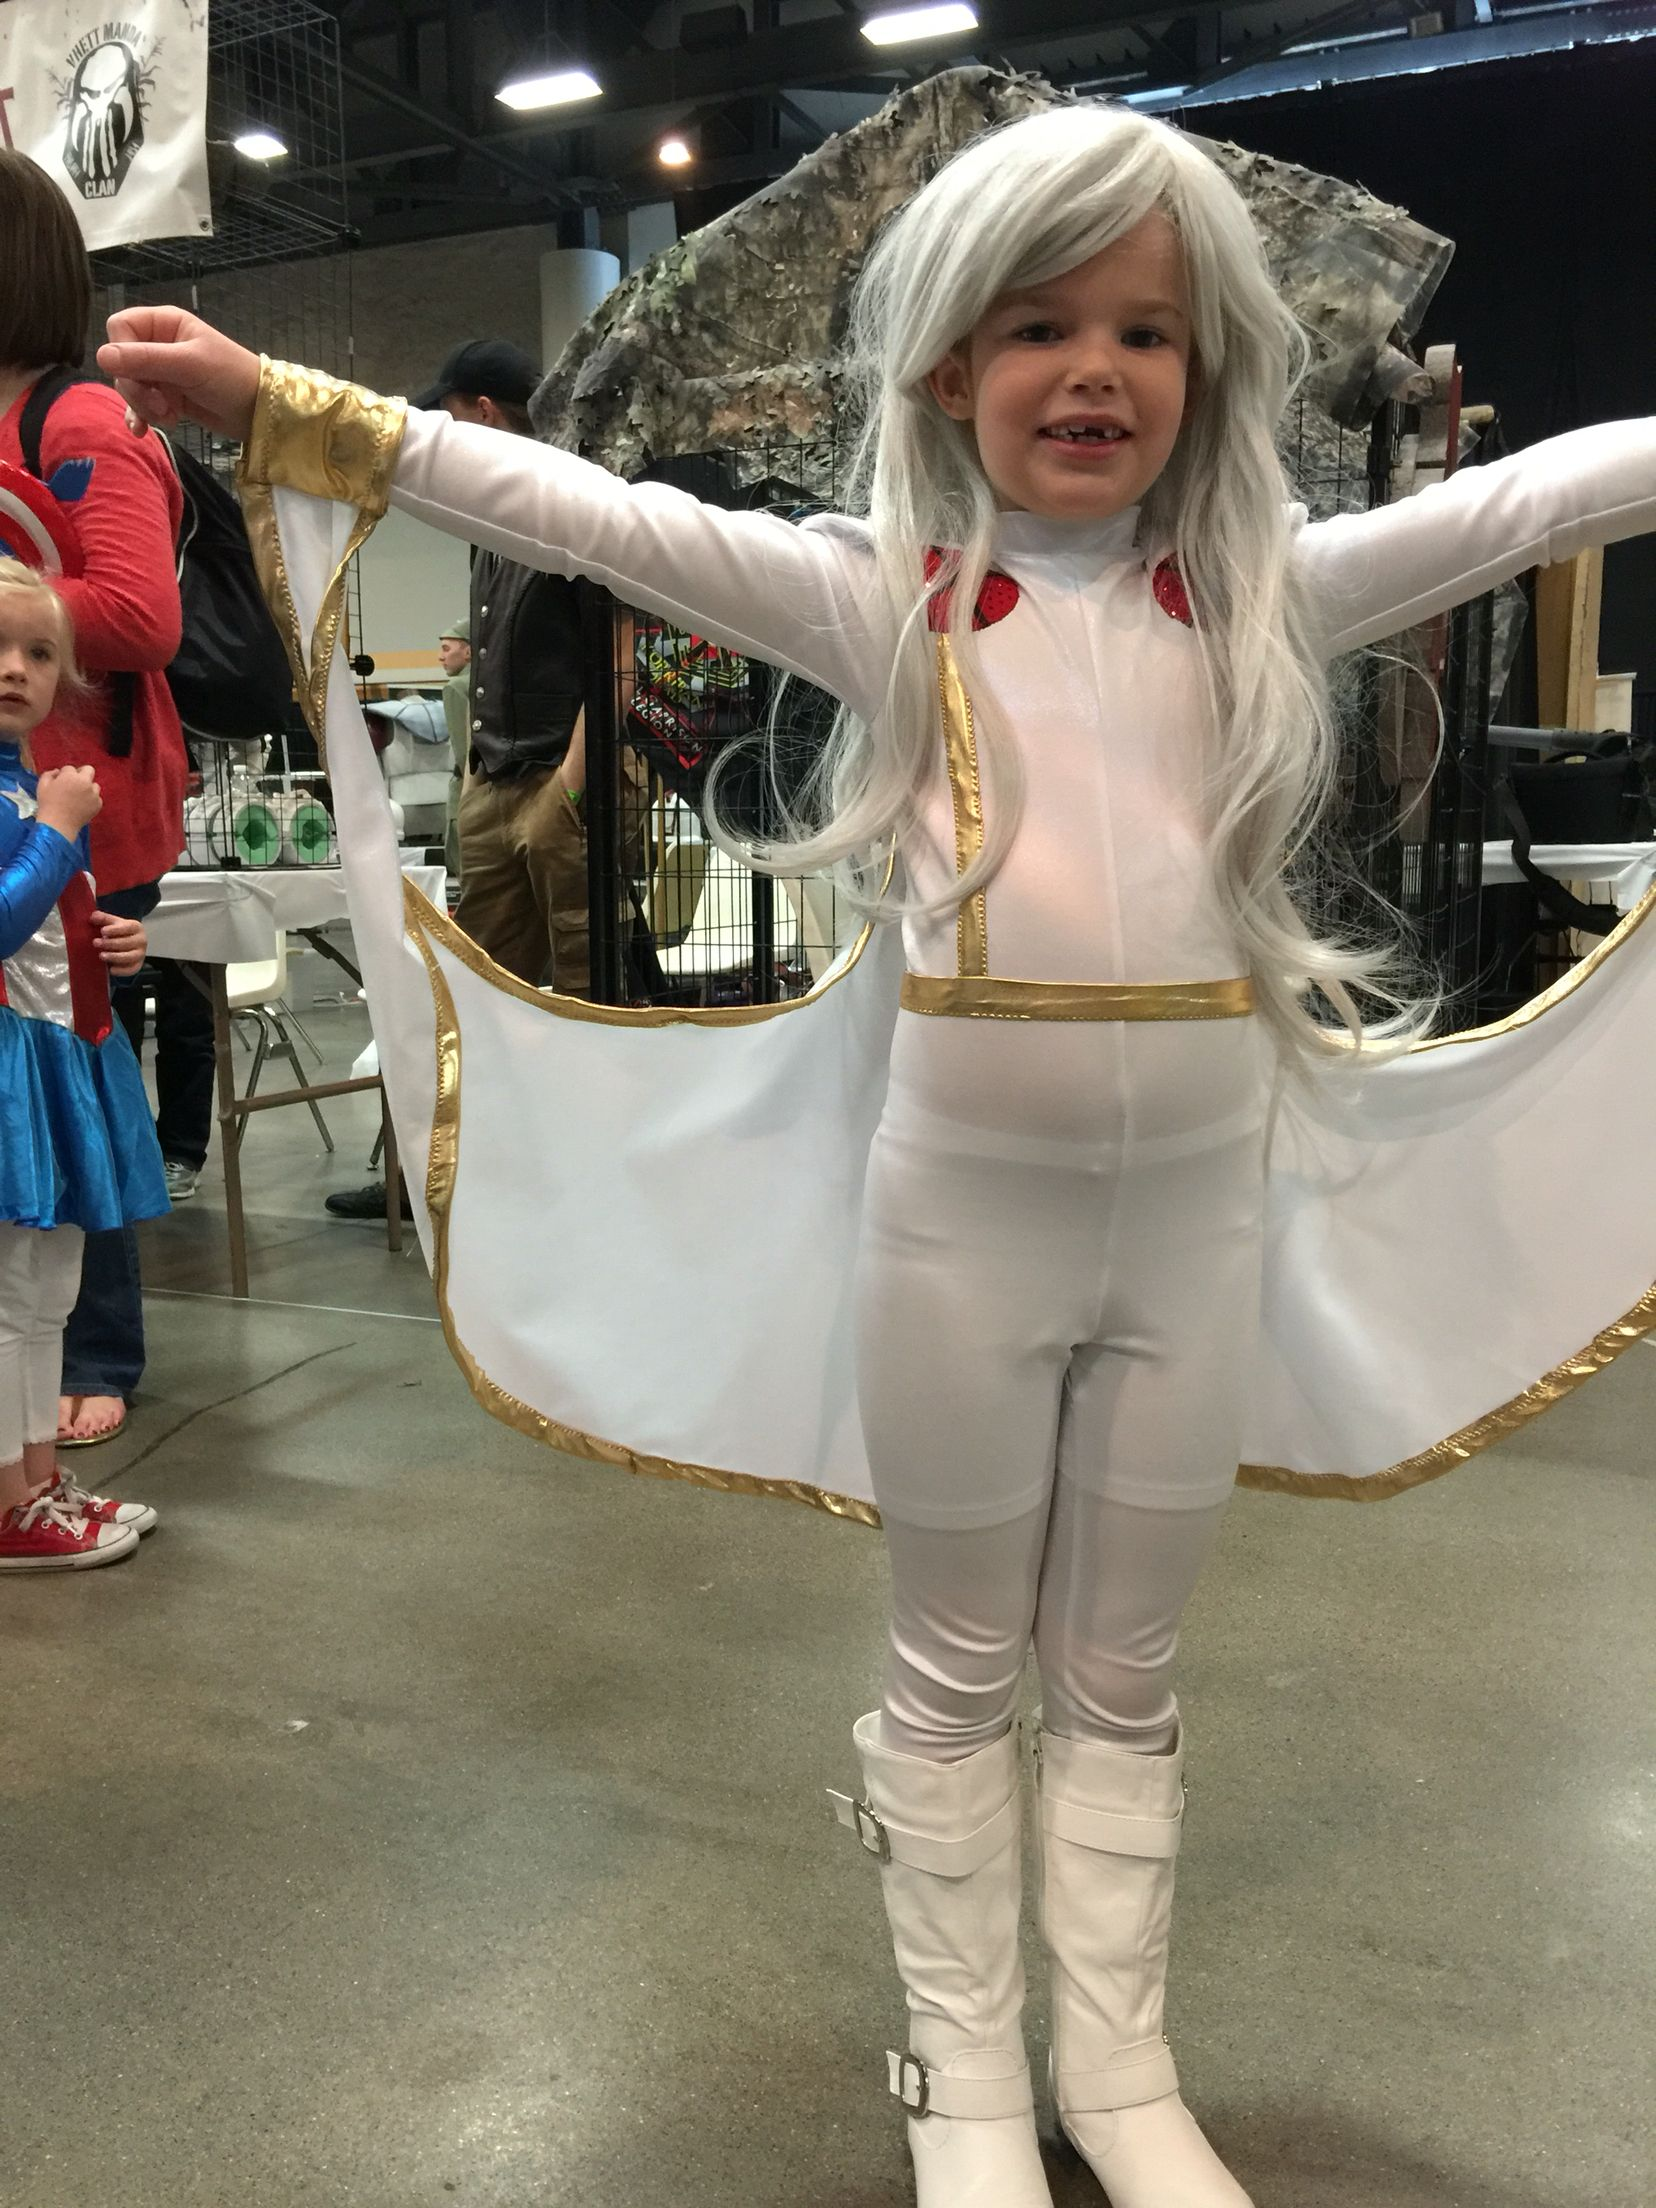 kidstorm at wizard world des moines on the cwbt. kidcosplay storm